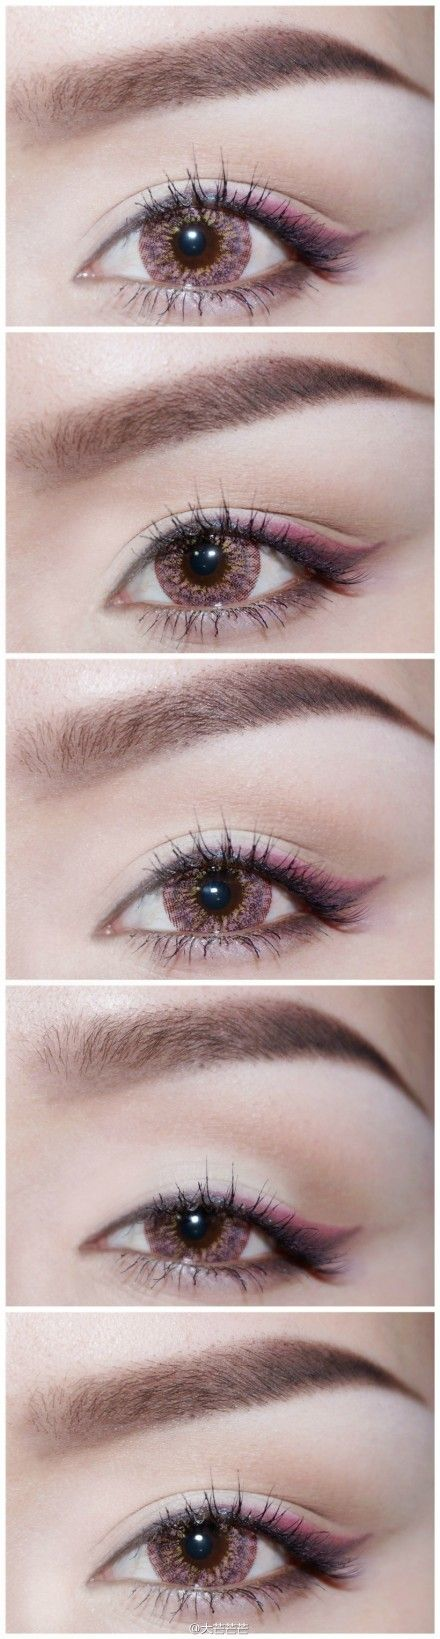 Like the little bit of extra color at the end of the wing! #makeupjunkie